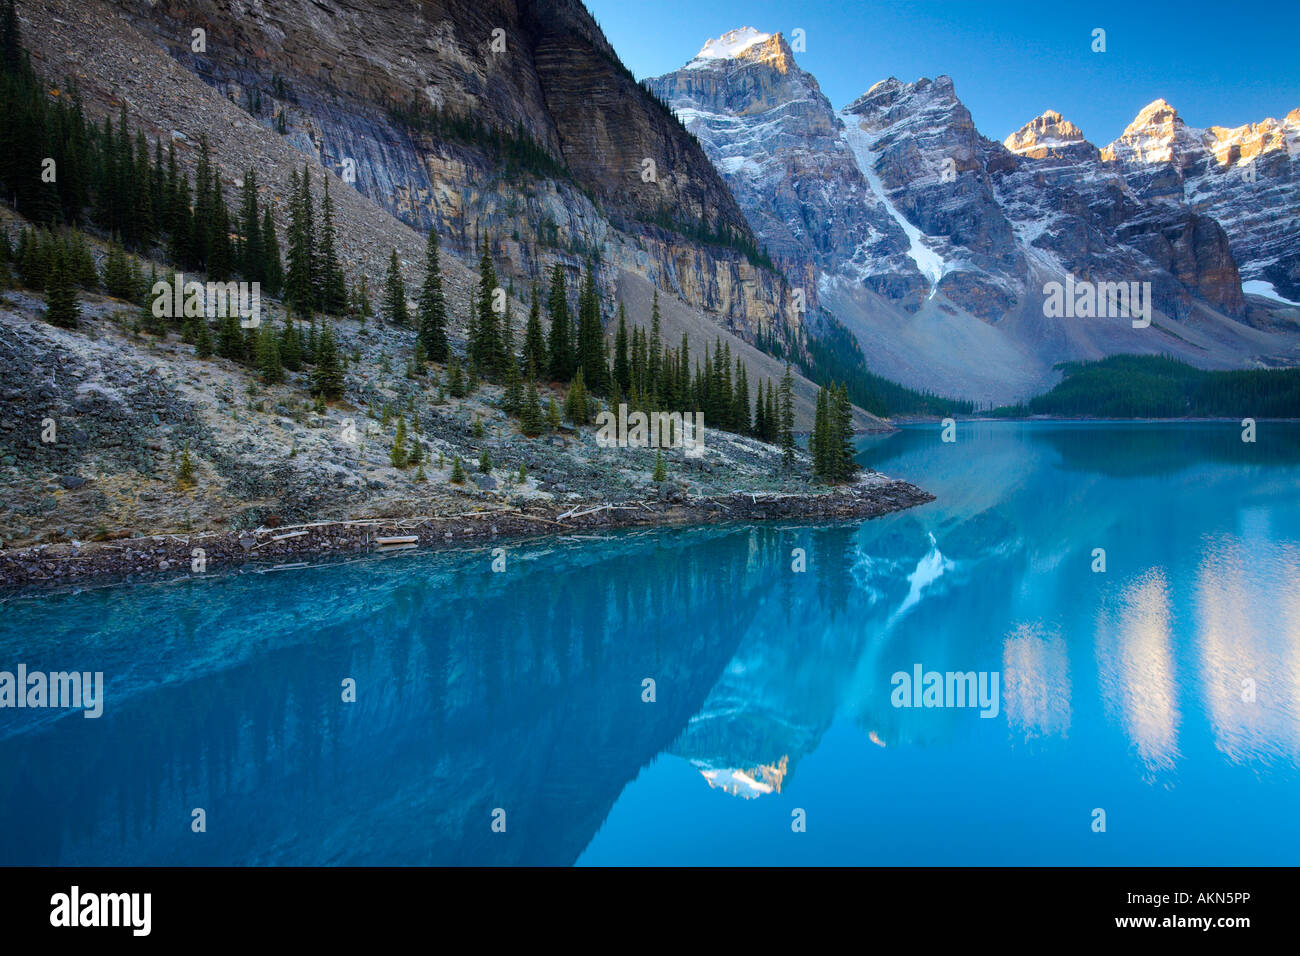 Spektakuläre Blue Waters Am Moraine Lake im Banff National Park, Kanada Stockbild